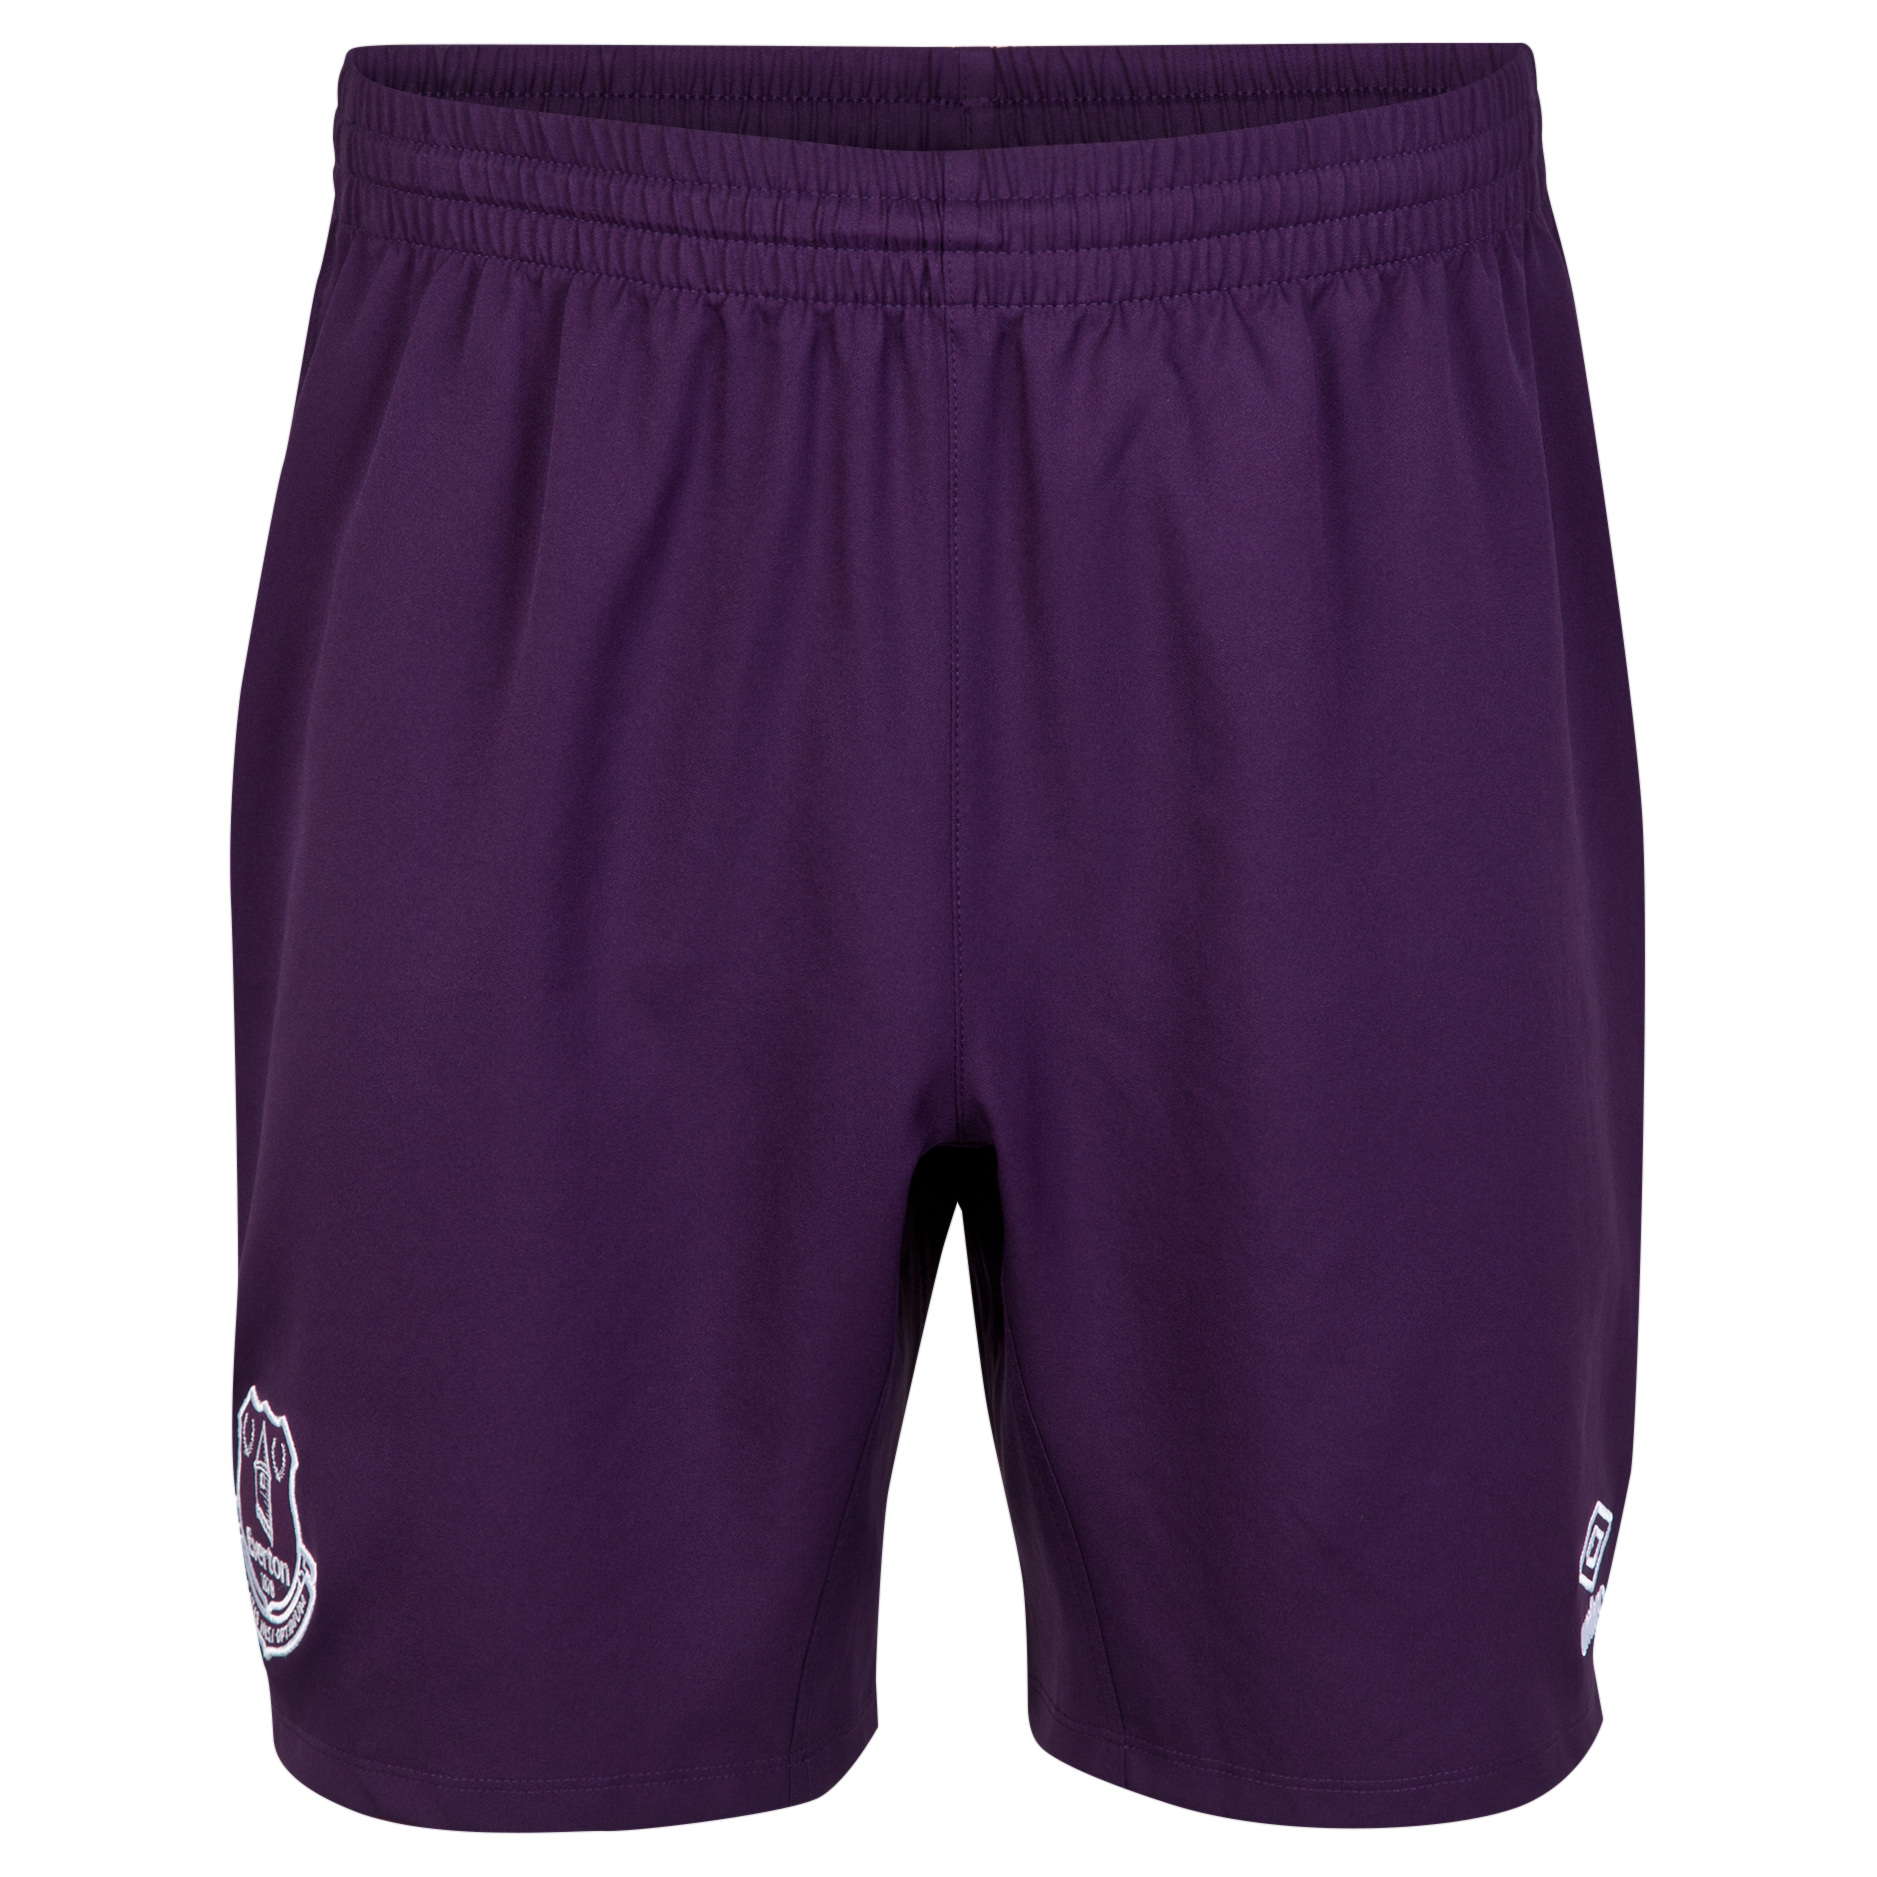 Everton 3rd Short 2014/15 - Junior